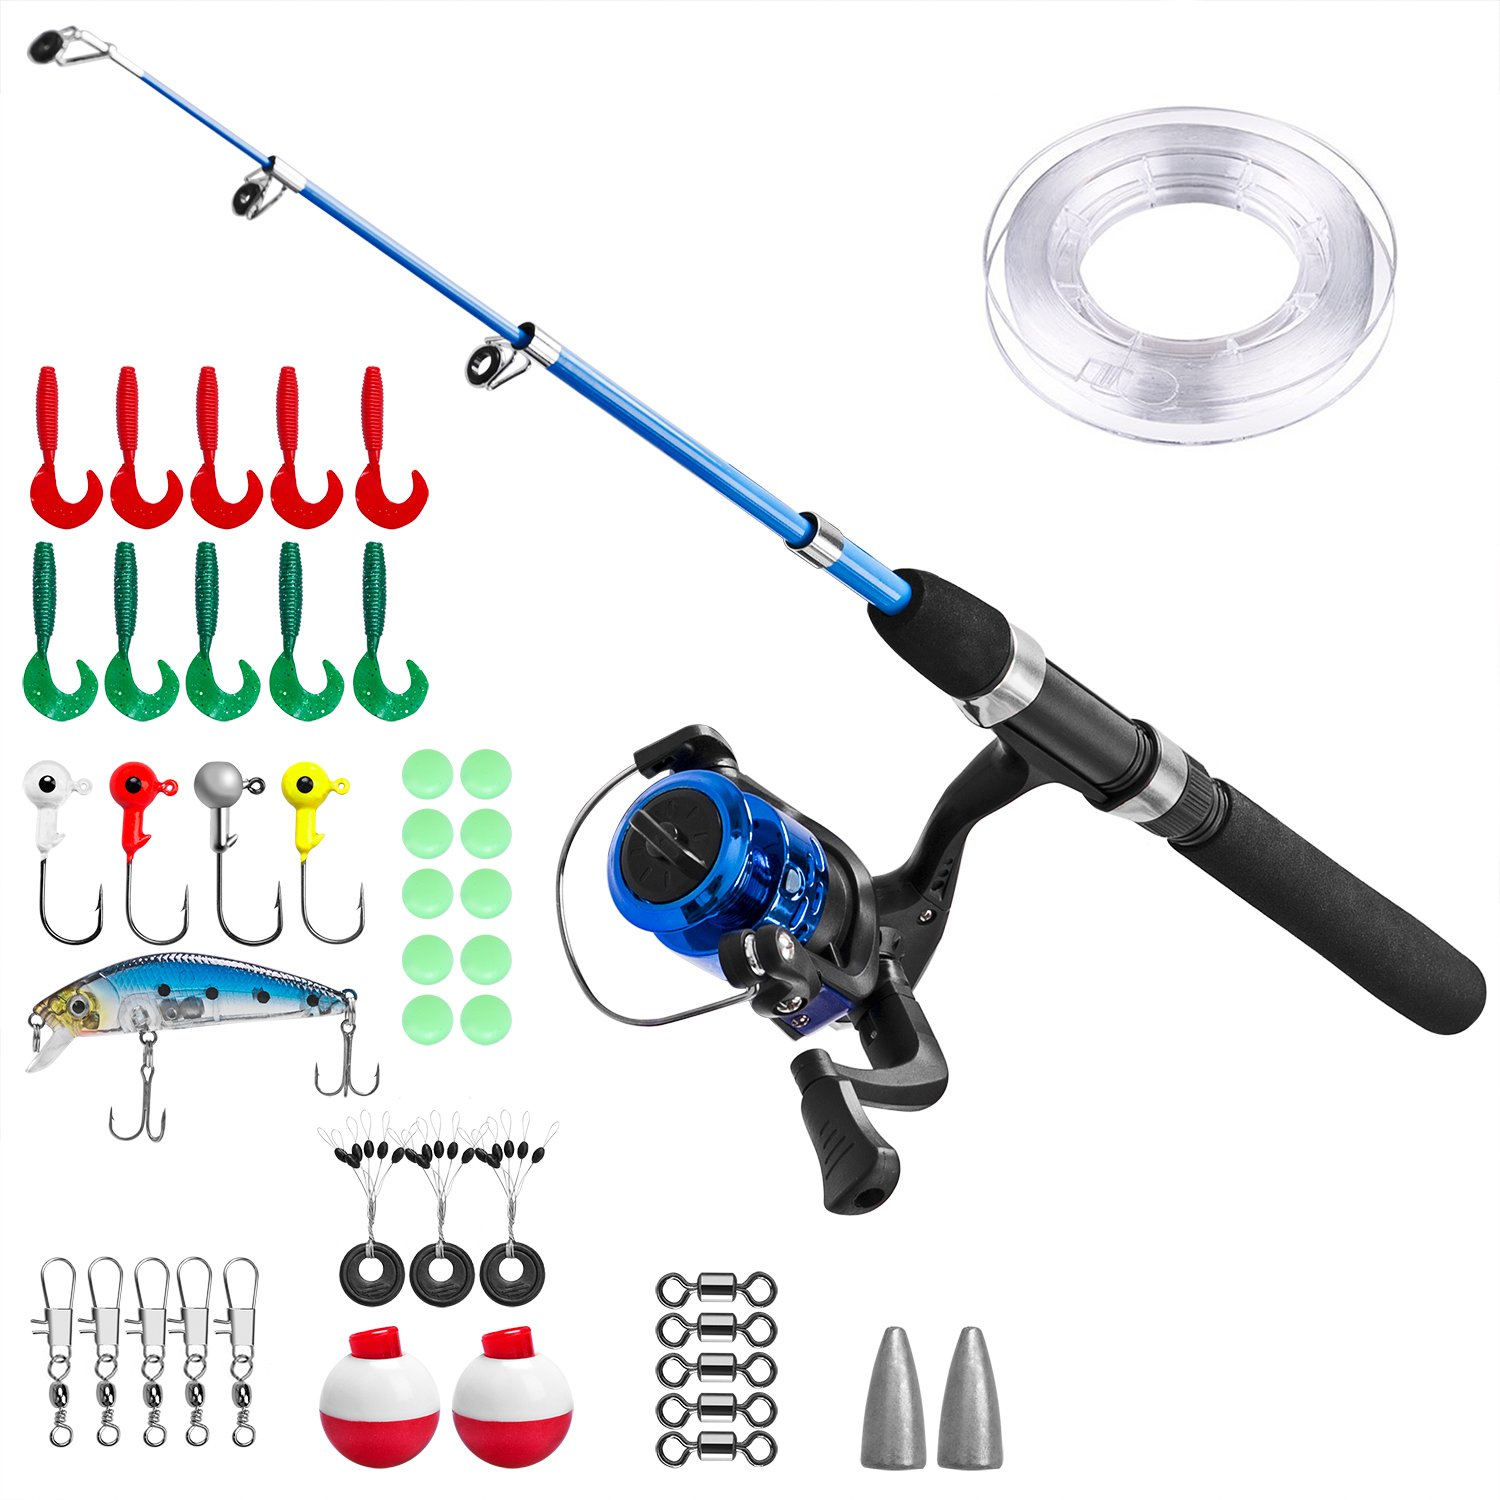 Kids Fishing Pole,Light and Portable Telescopic Fishing Rod and Reel Combos